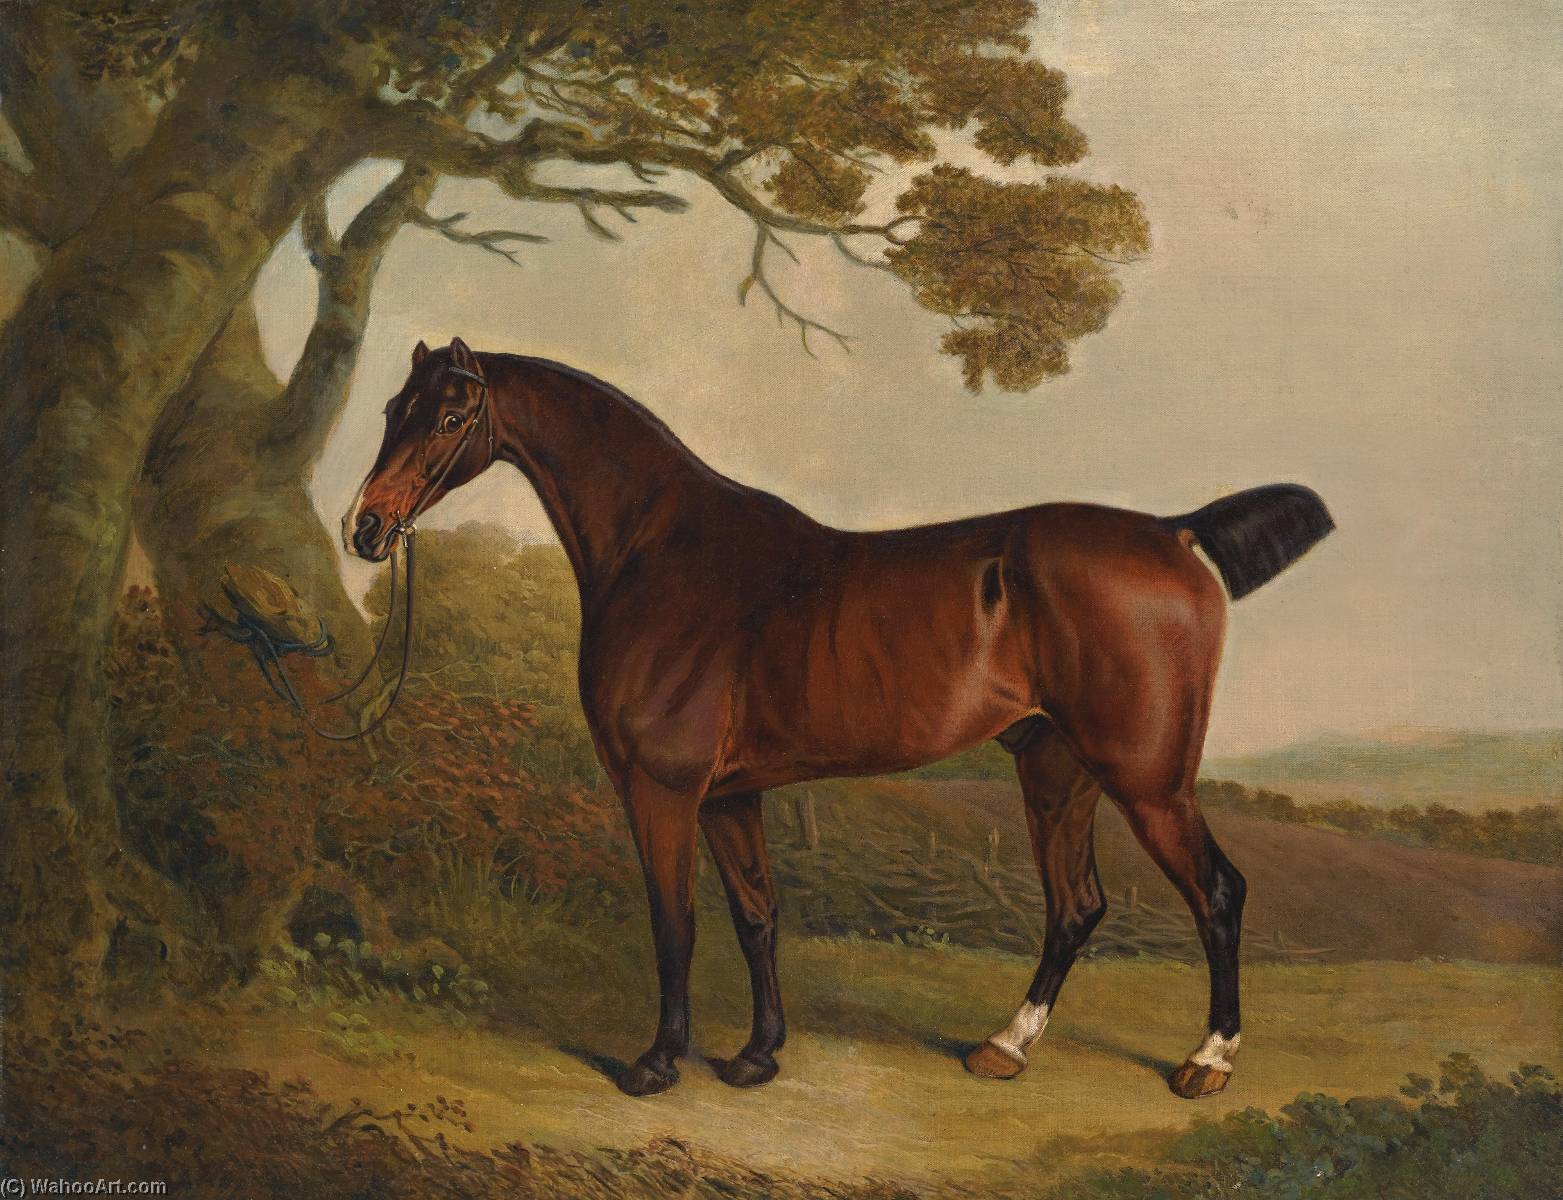 Wikioo.org - The Encyclopedia of Fine Arts - Painting, Artwork by Thomas Weaver - a bay horse tethered to a tree in a landscape